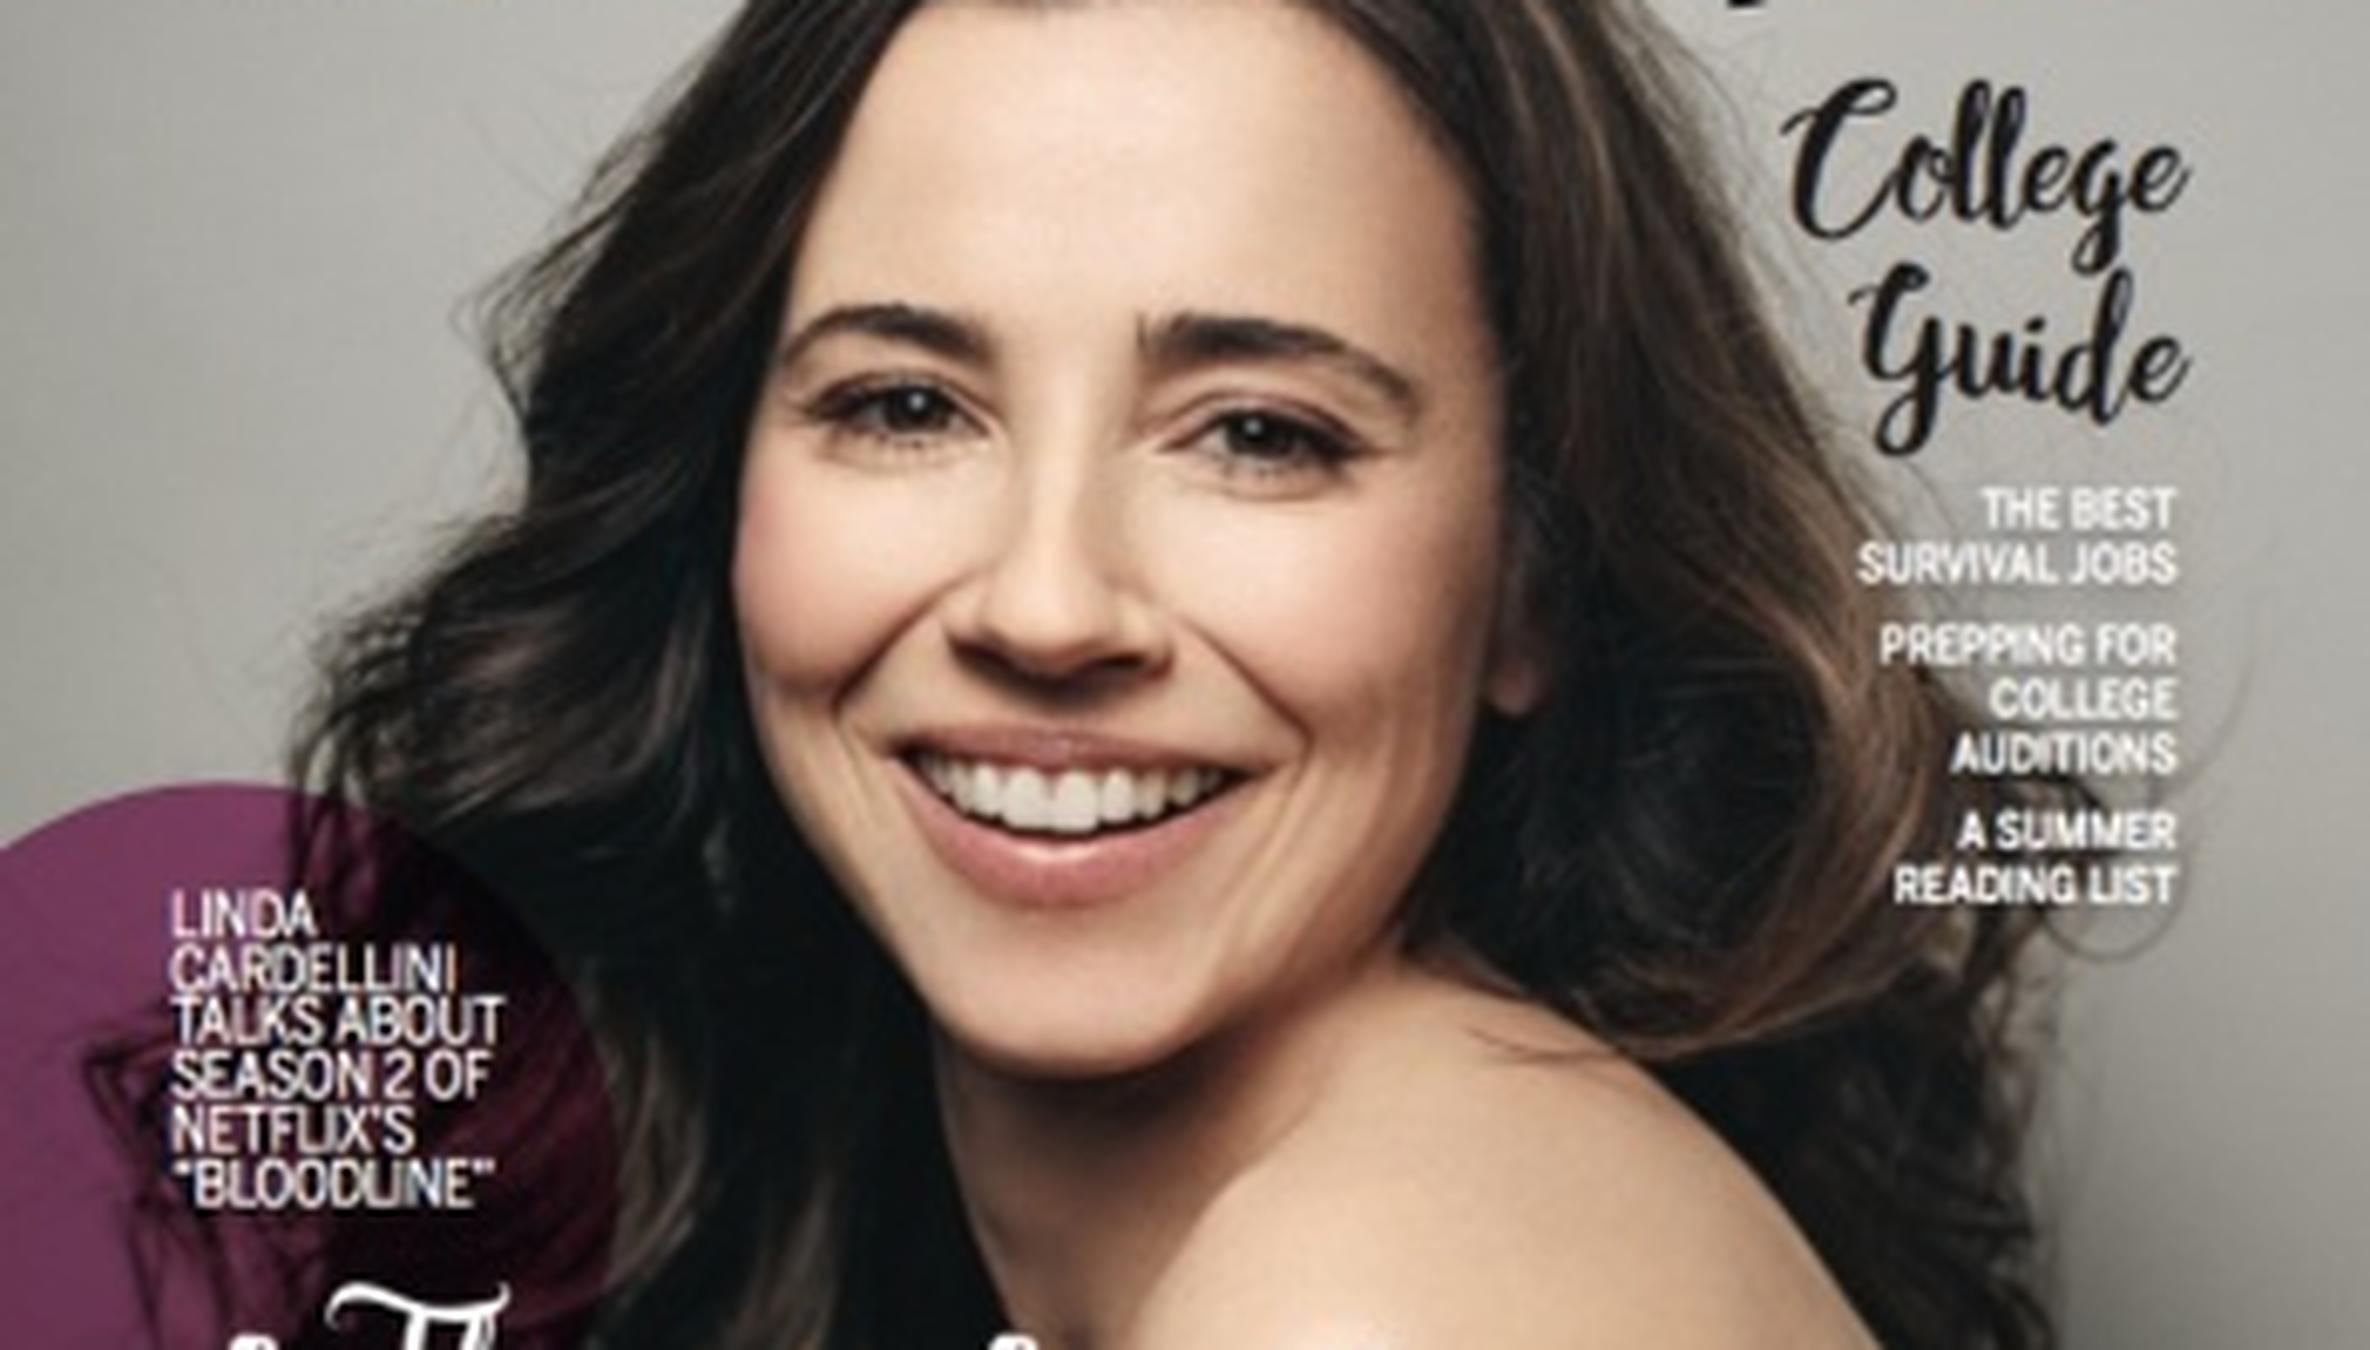 Linda Cardellini nudes (55 photo), images Ass, Instagram, underwear 2019